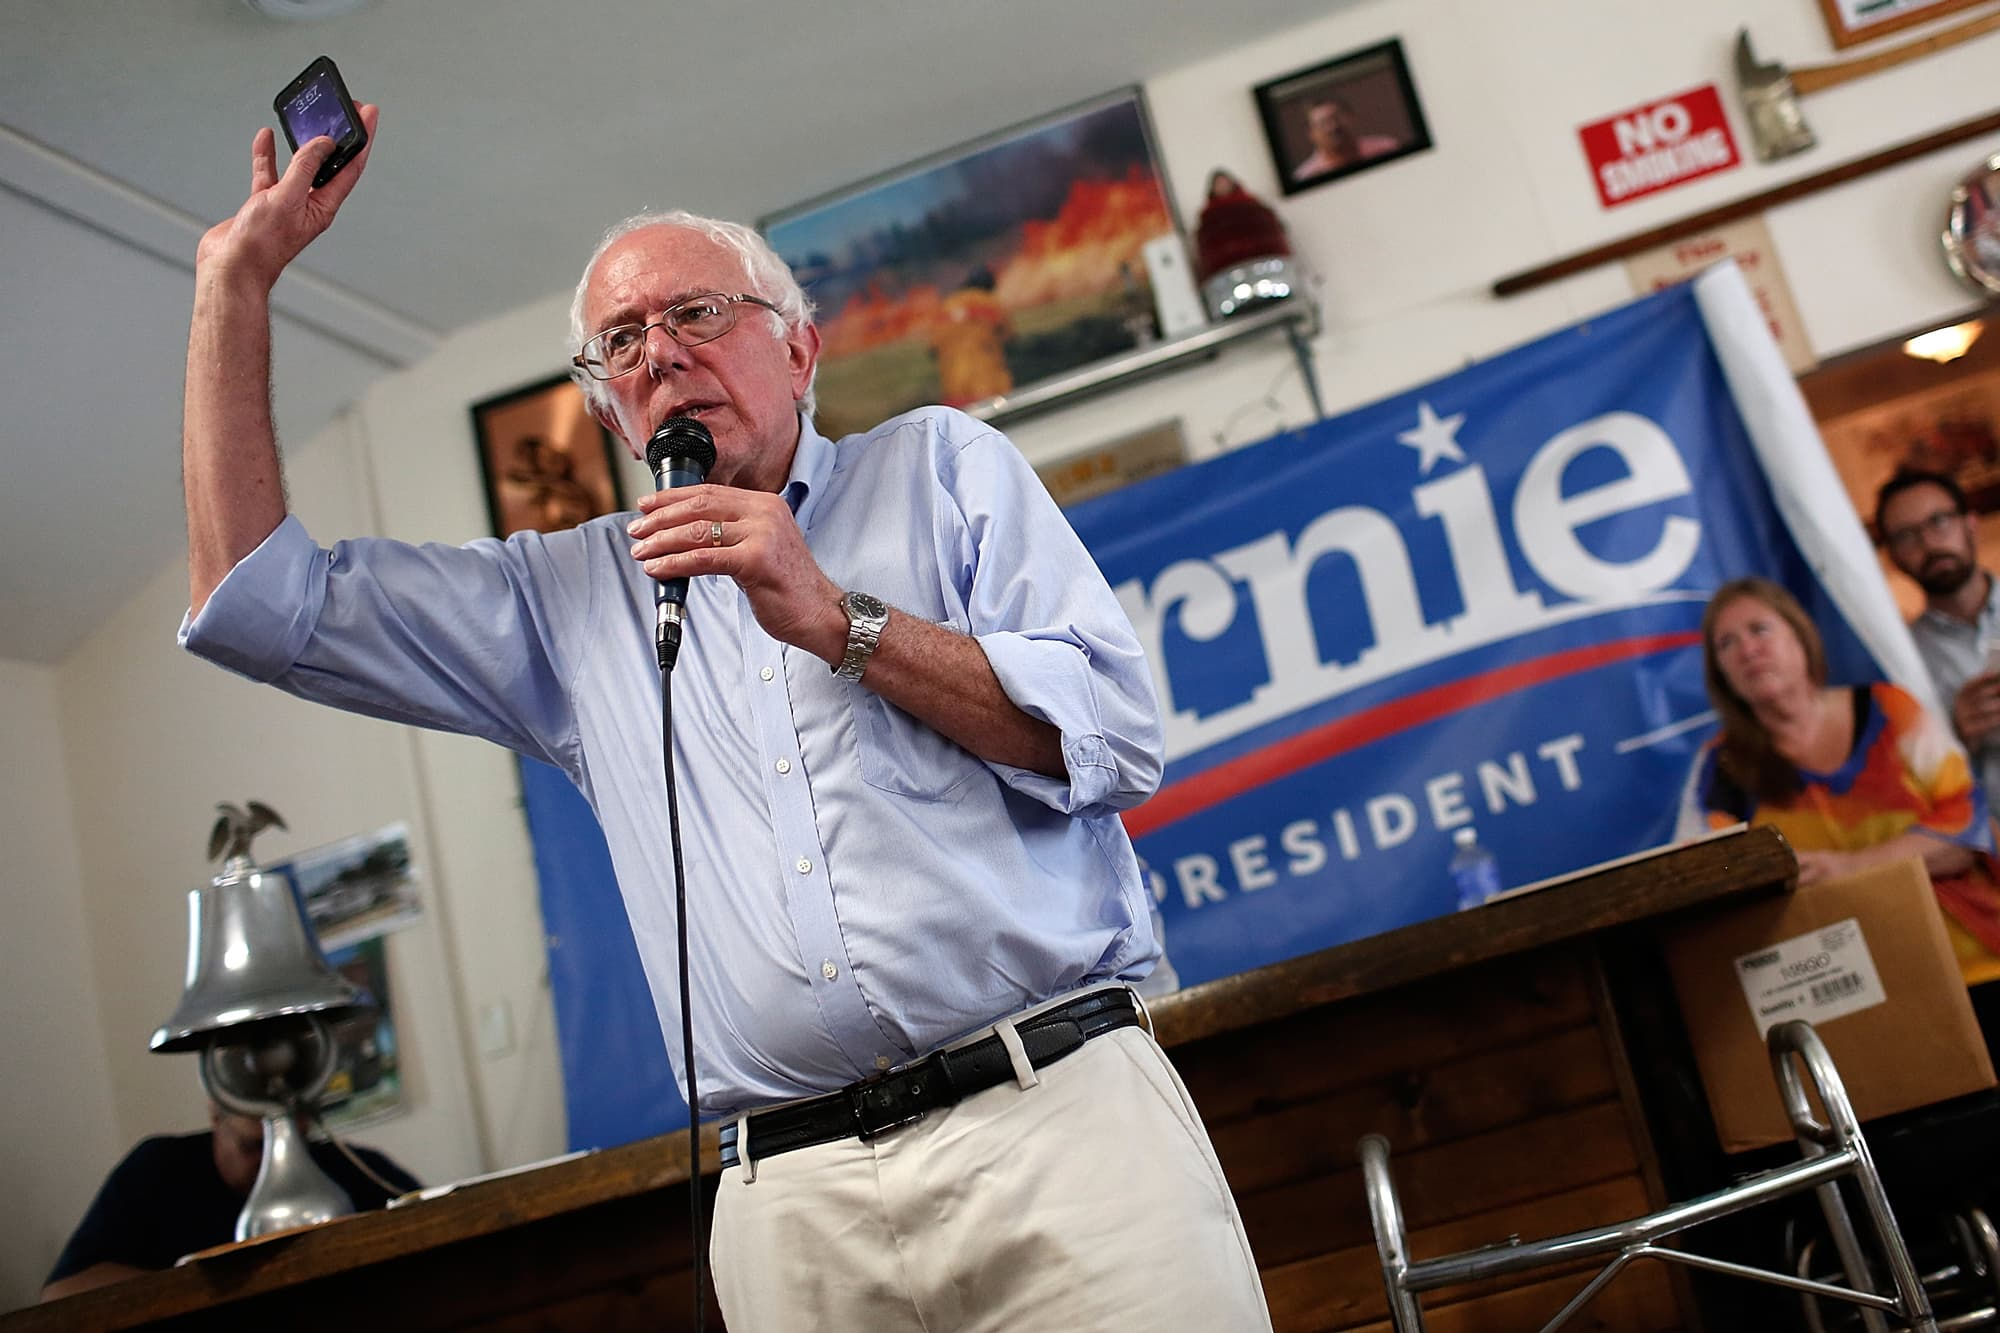 Bernie Sanders doesn't have any apps on his phone